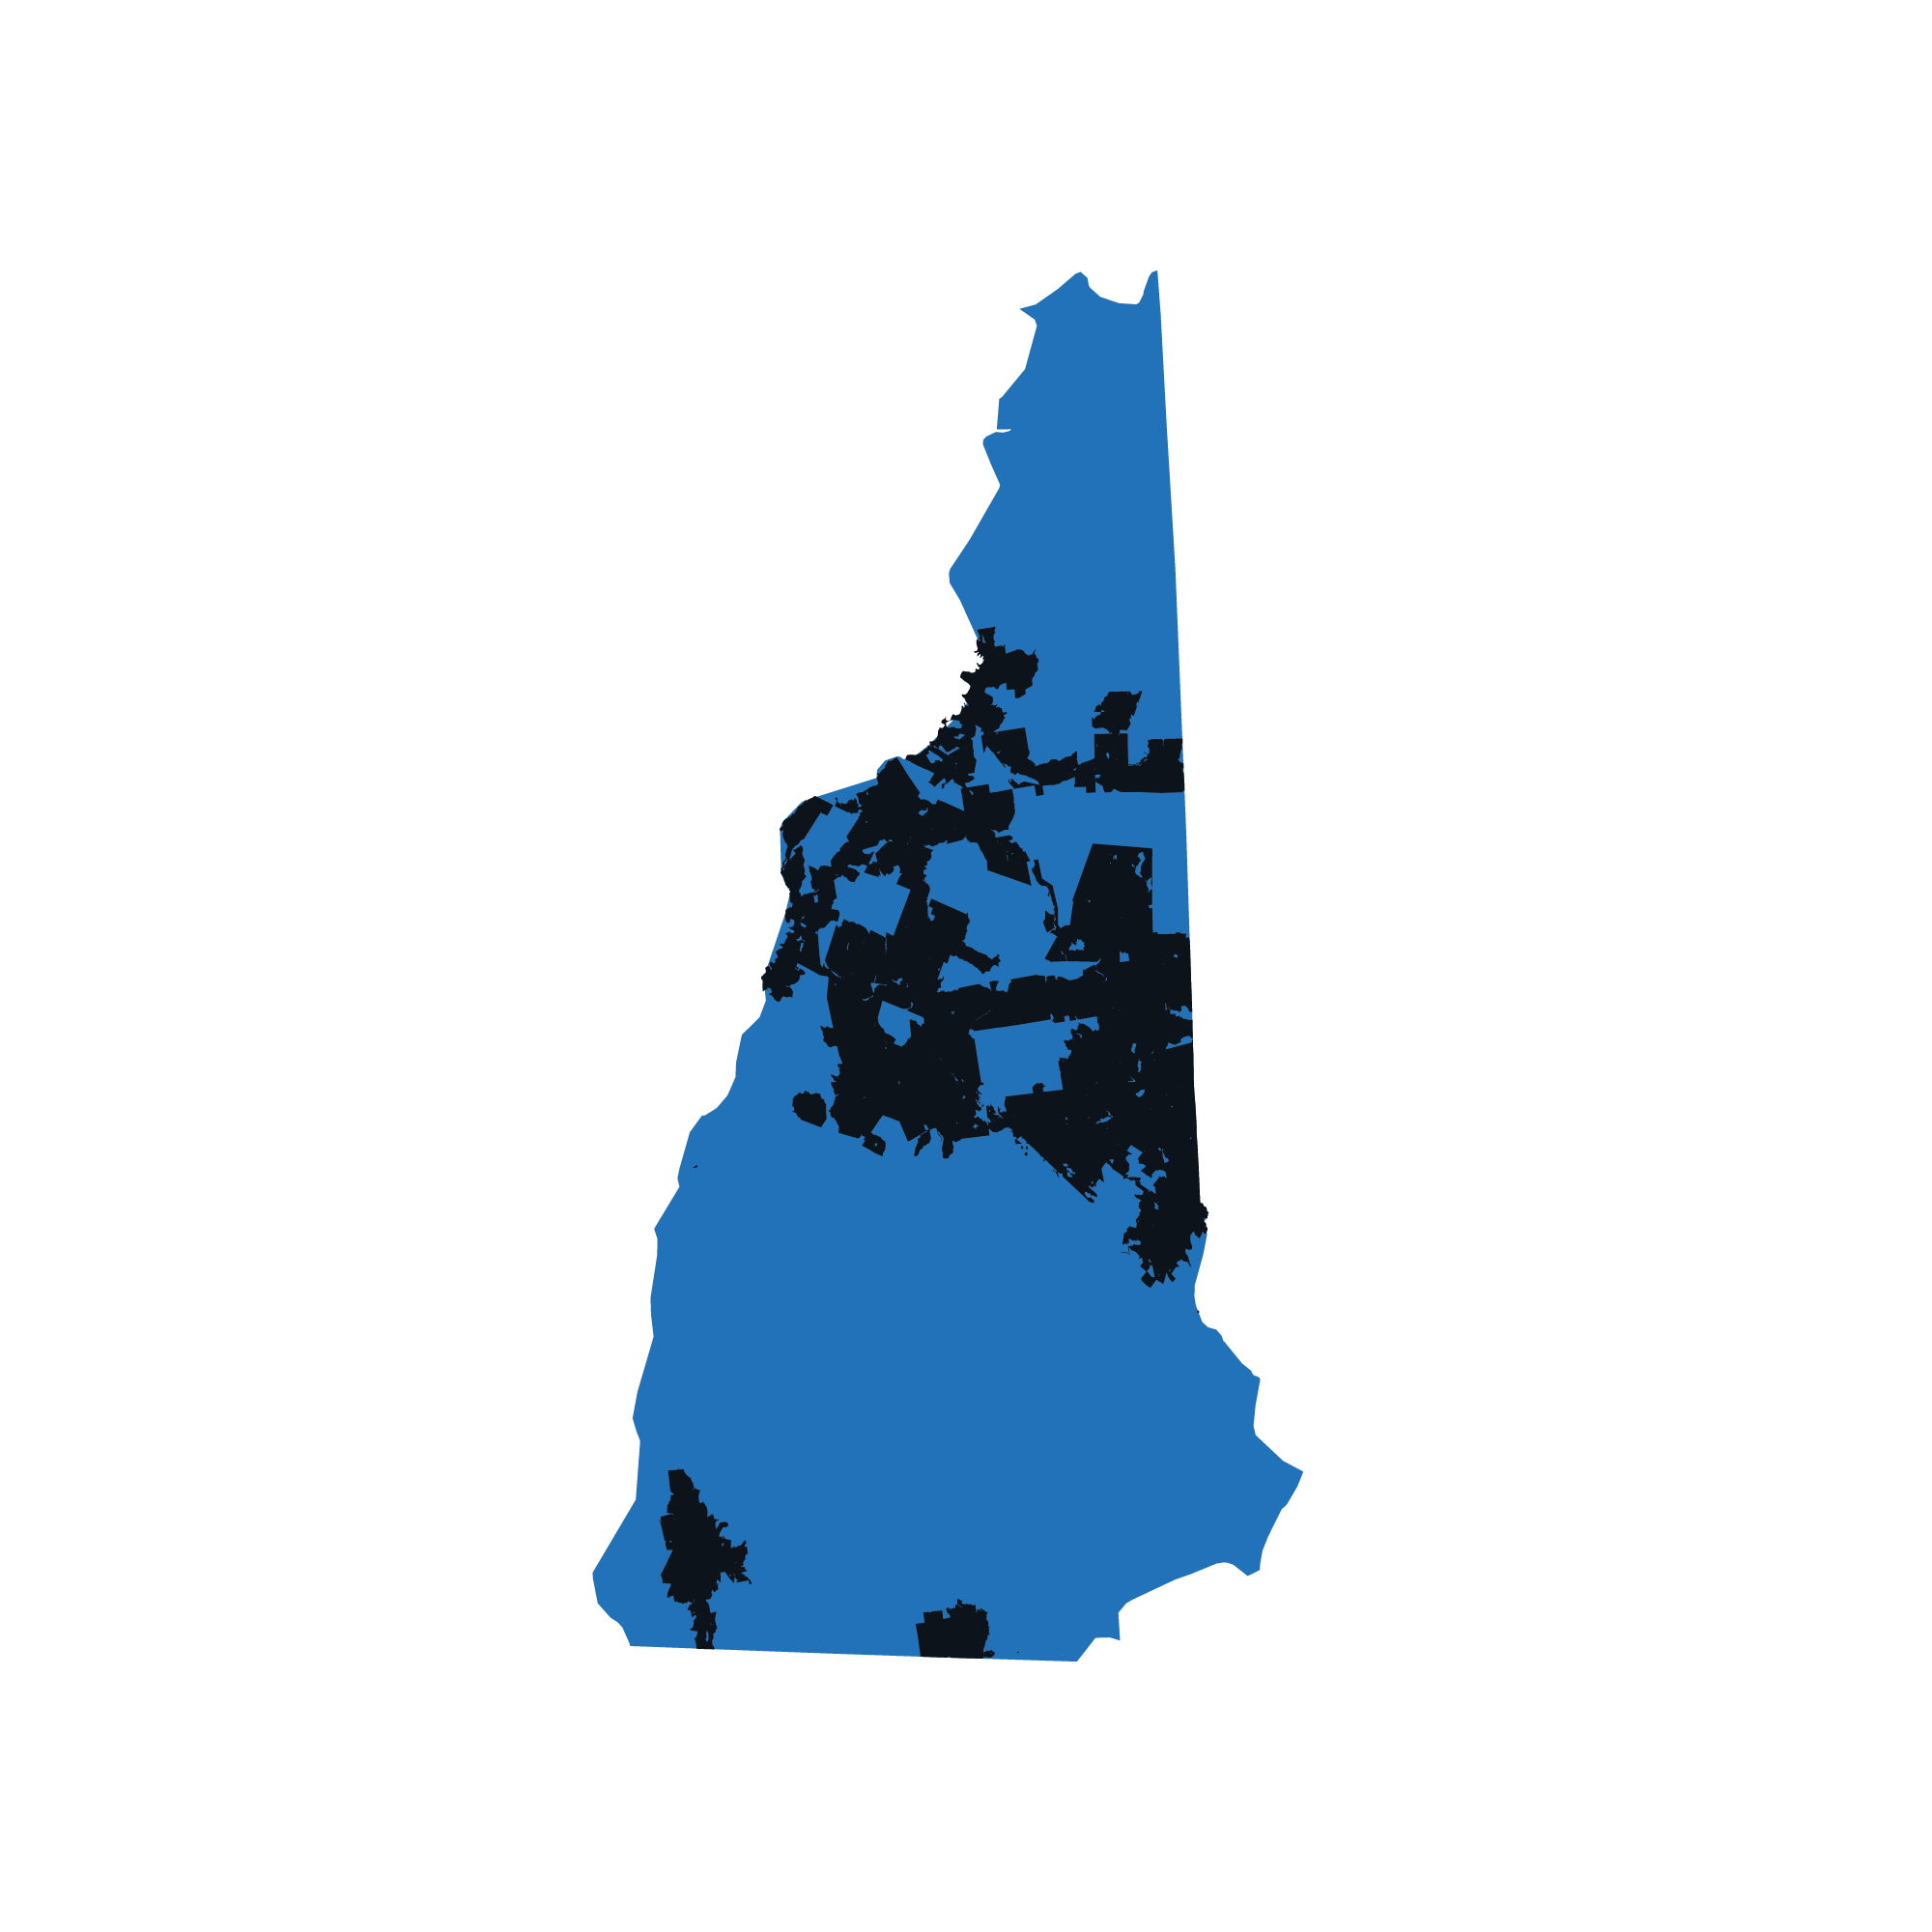 New Hampshire map data image